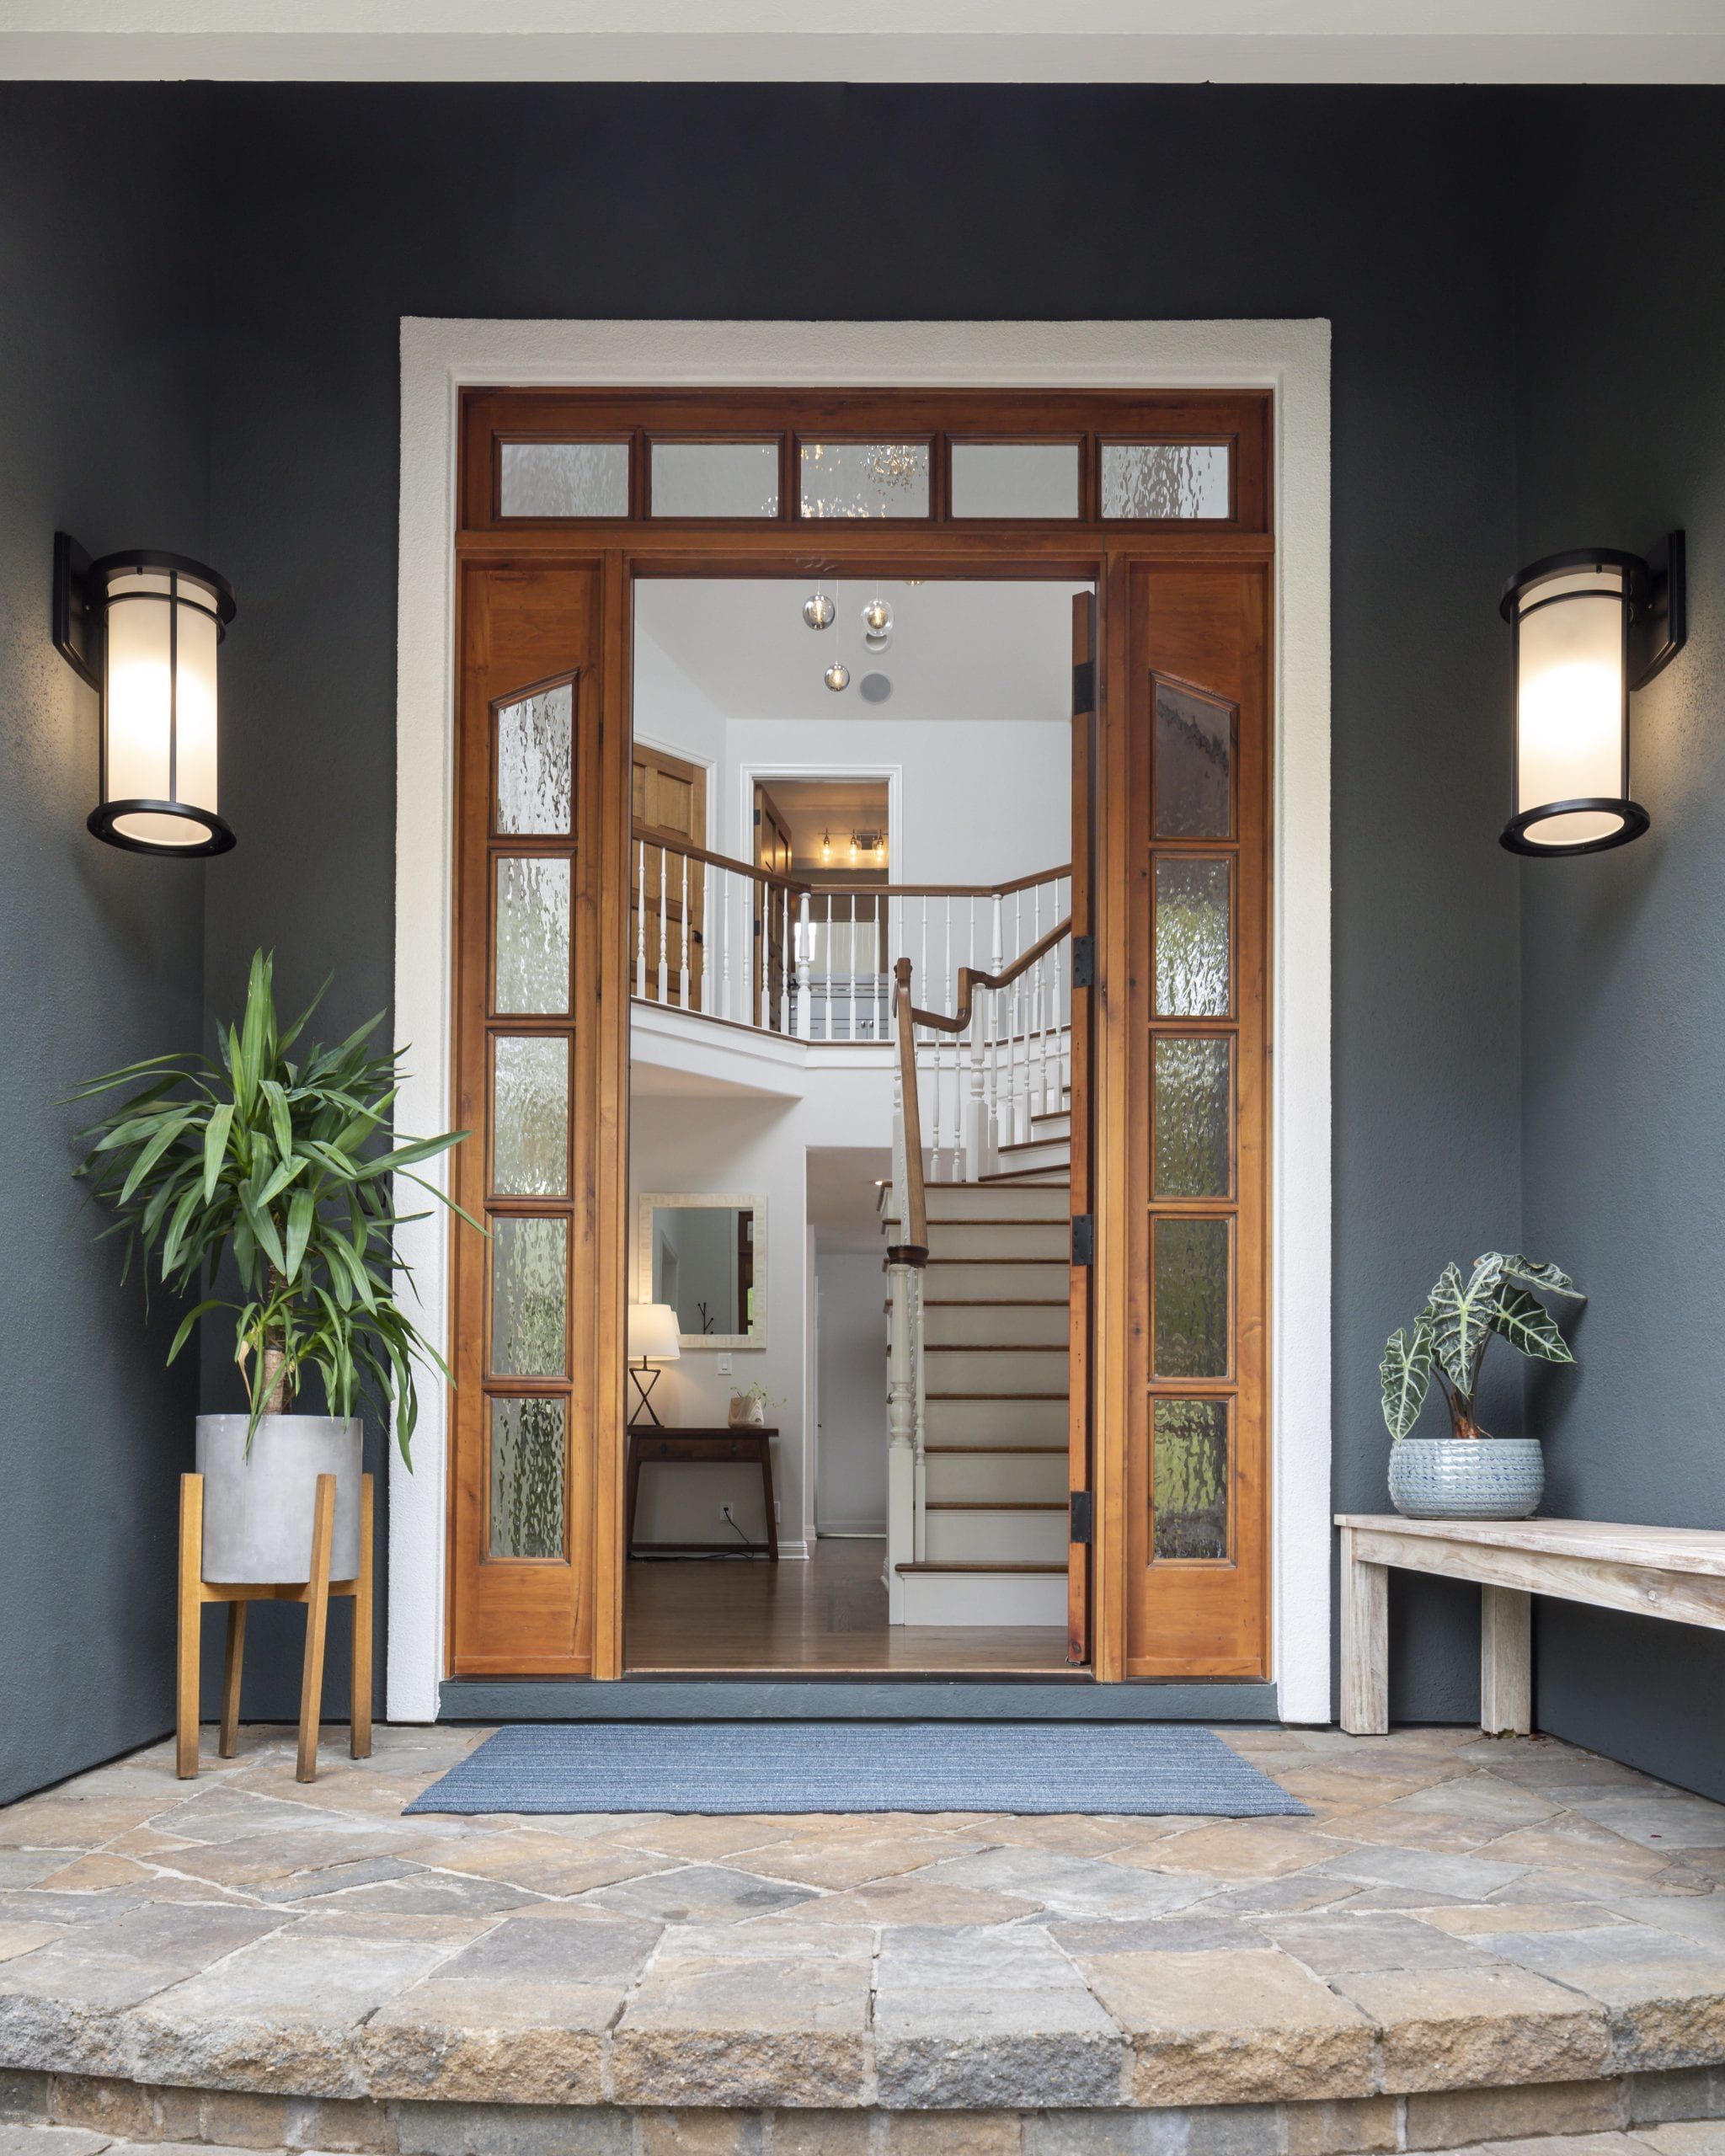 Wooden framed front door with stairway in the background